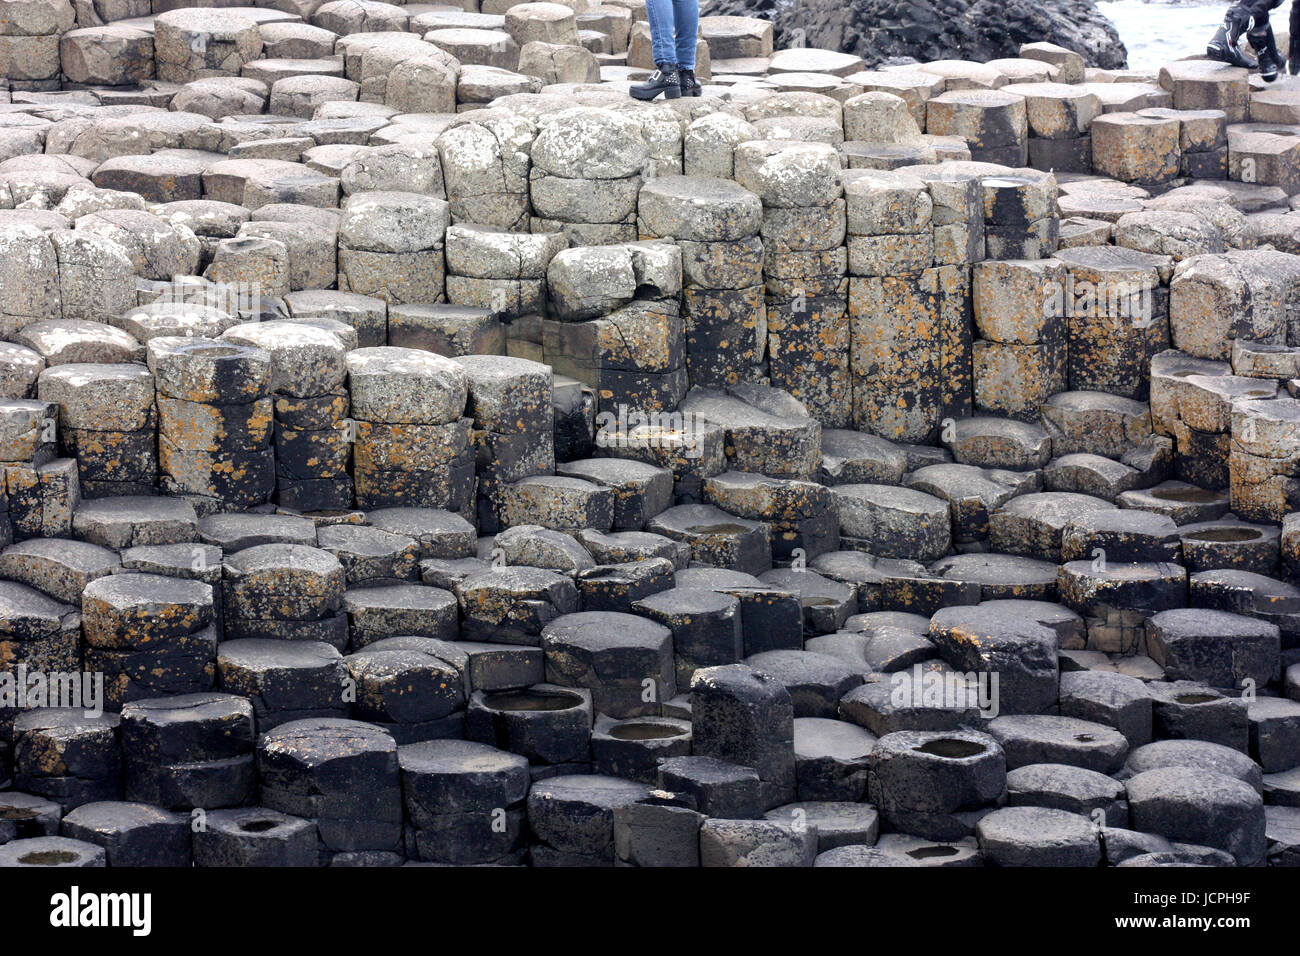 On the Giant's Causeway, Northern Ireland - Stock Image